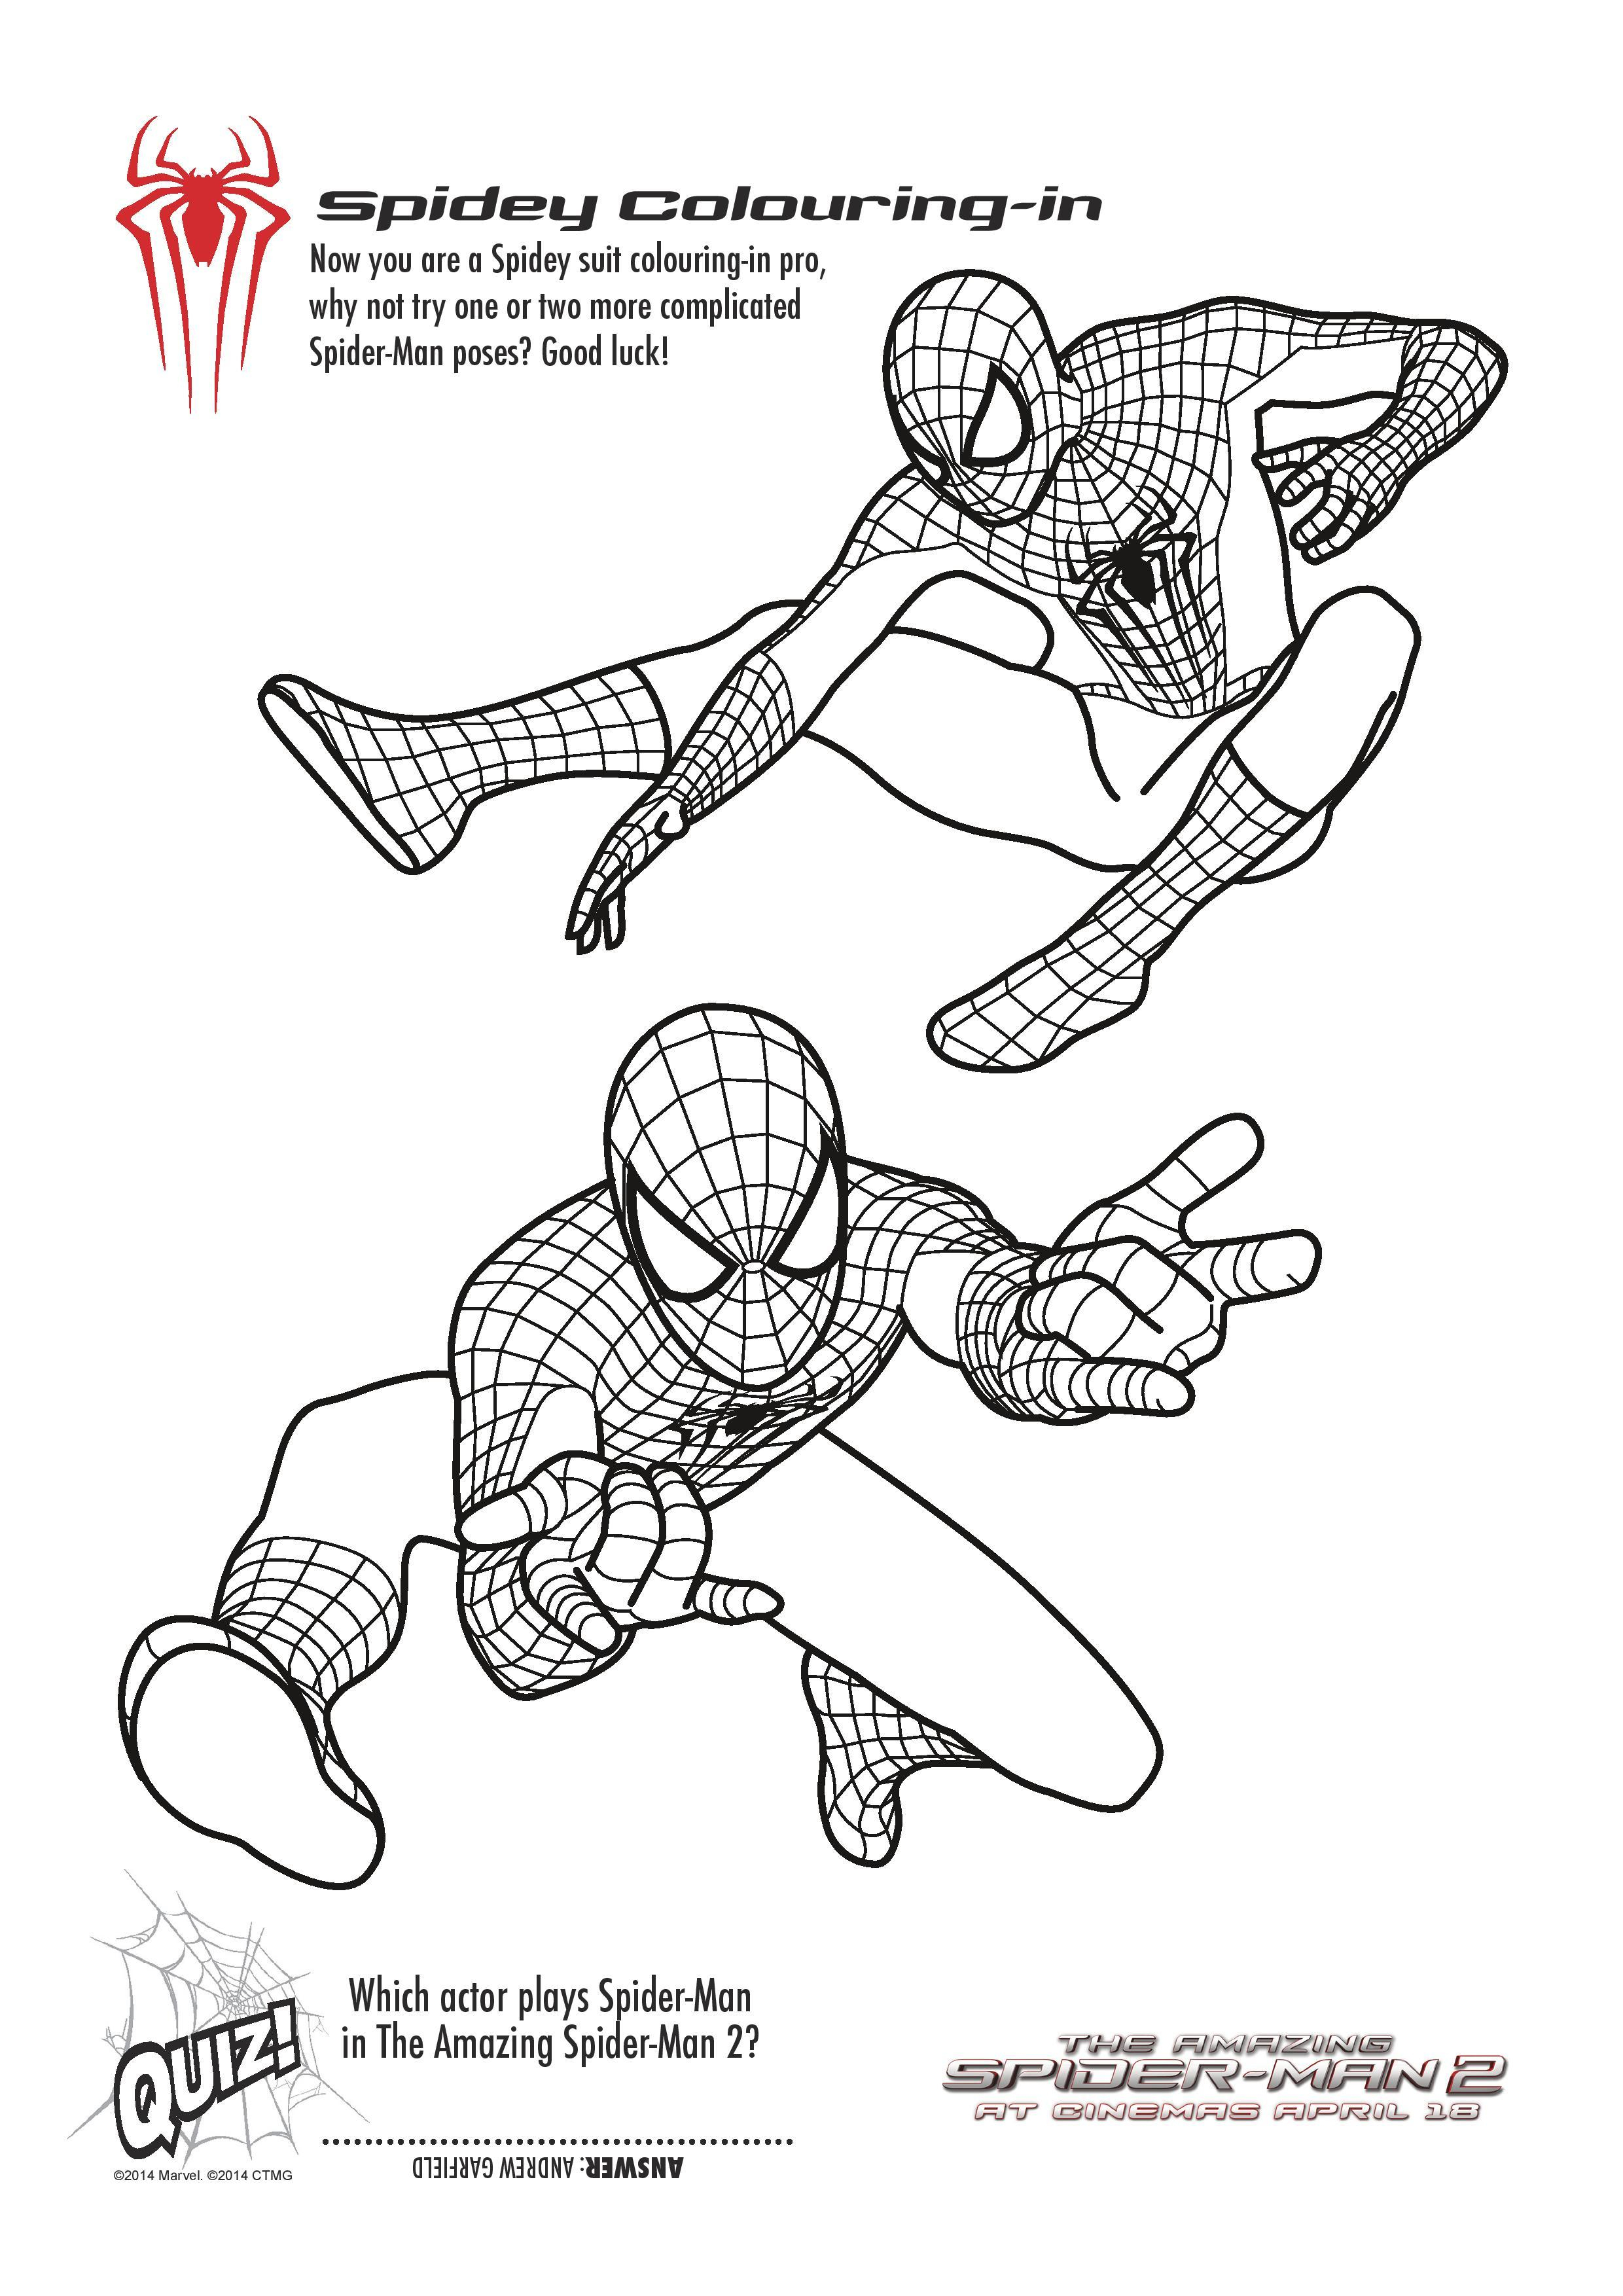 Free Printable Spiderman Colouring Pages And Activity Sheets - In | Spiderman Worksheets Free Printables